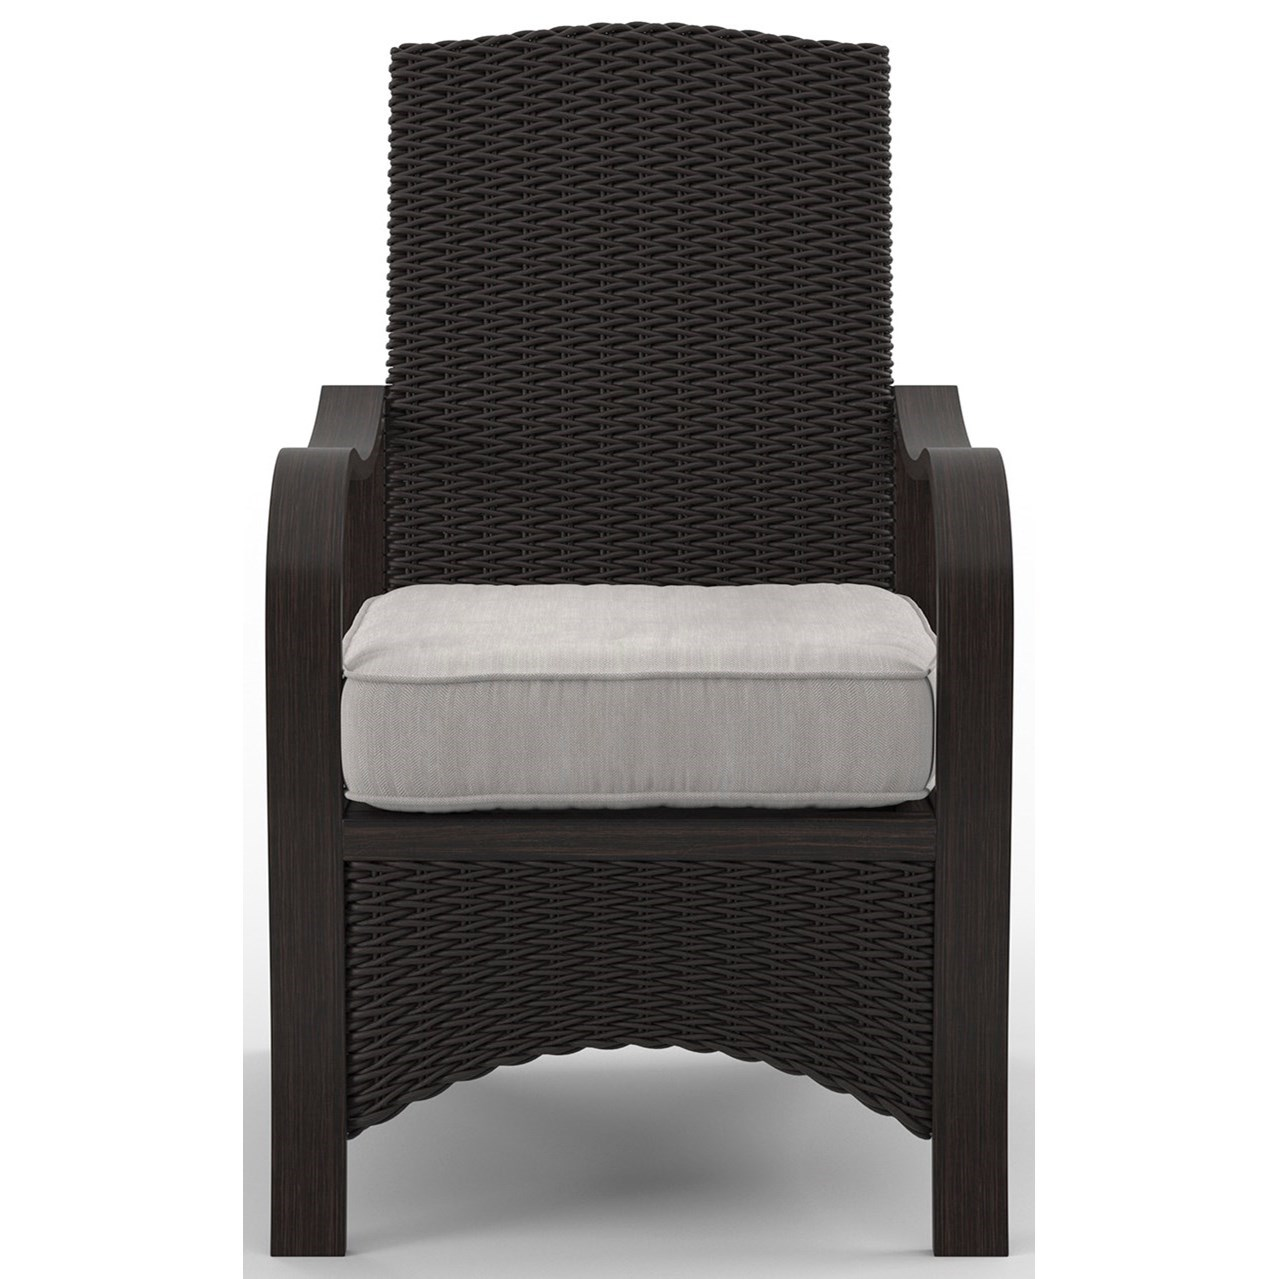 Signature Design by Ashley Marsh Creek Set of 2 Chairs with Cushion - Item Number: P775-601A